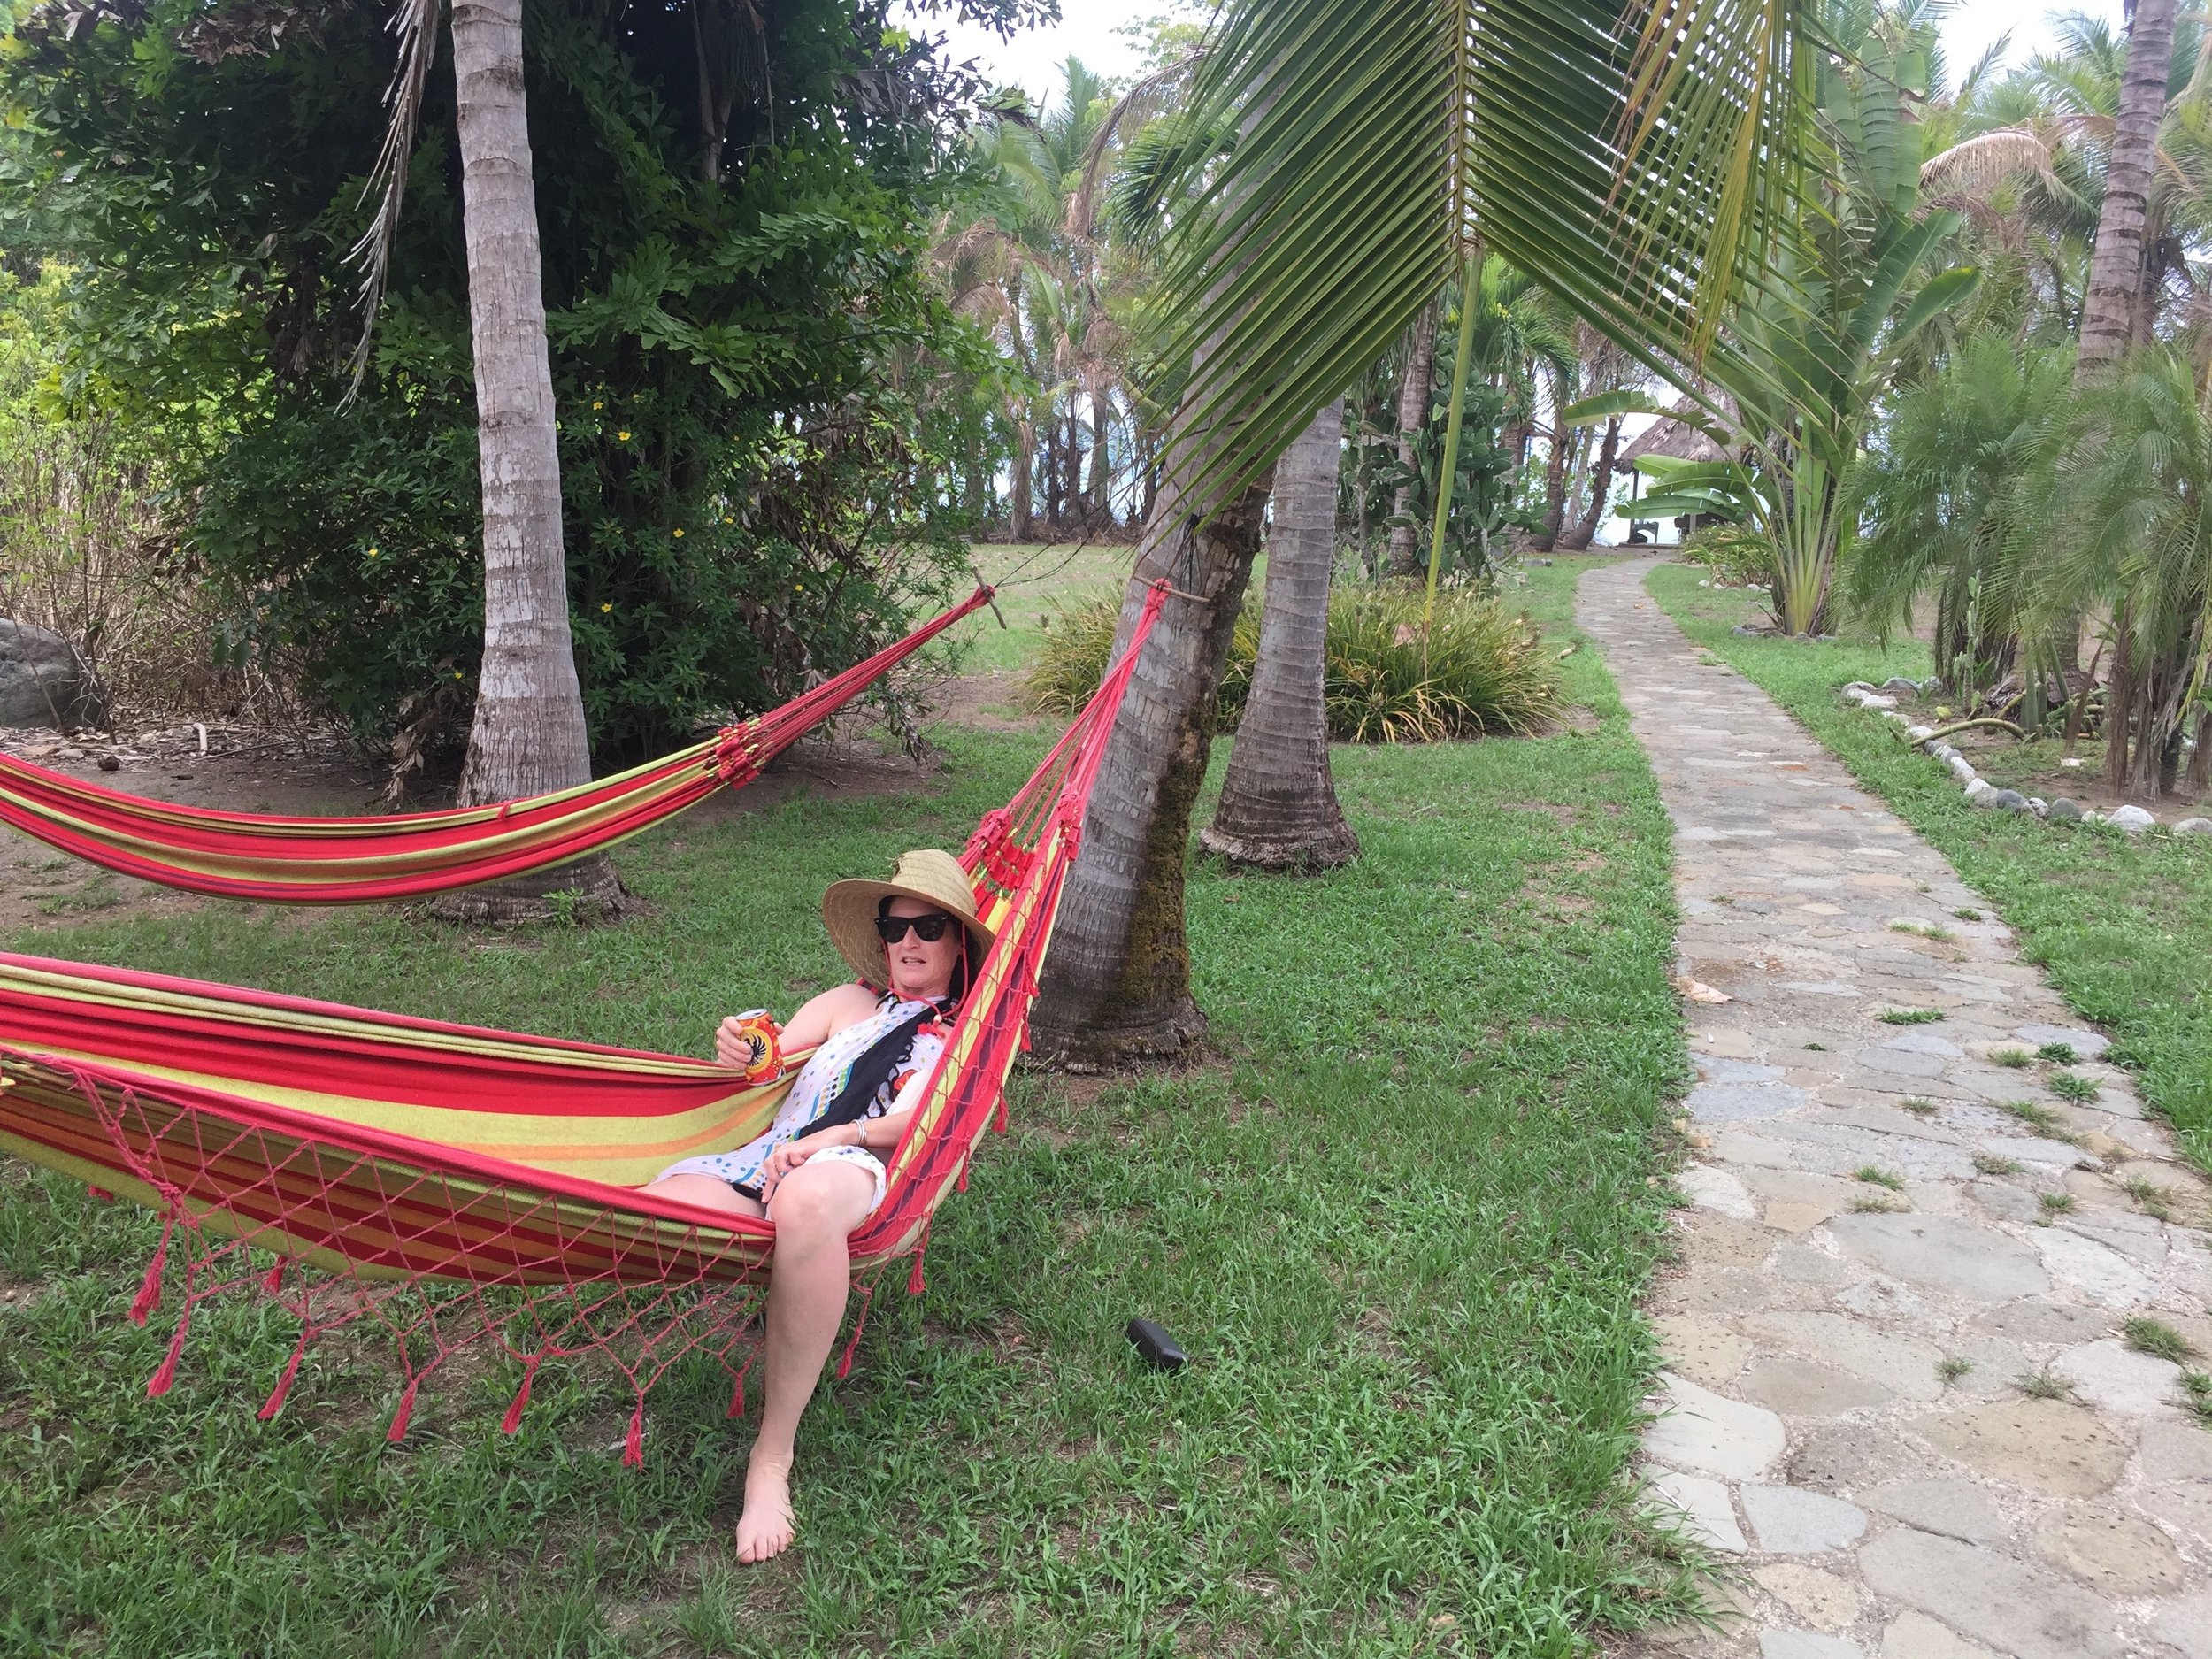 me in hammock behind pool house with a beer (shhhhh)